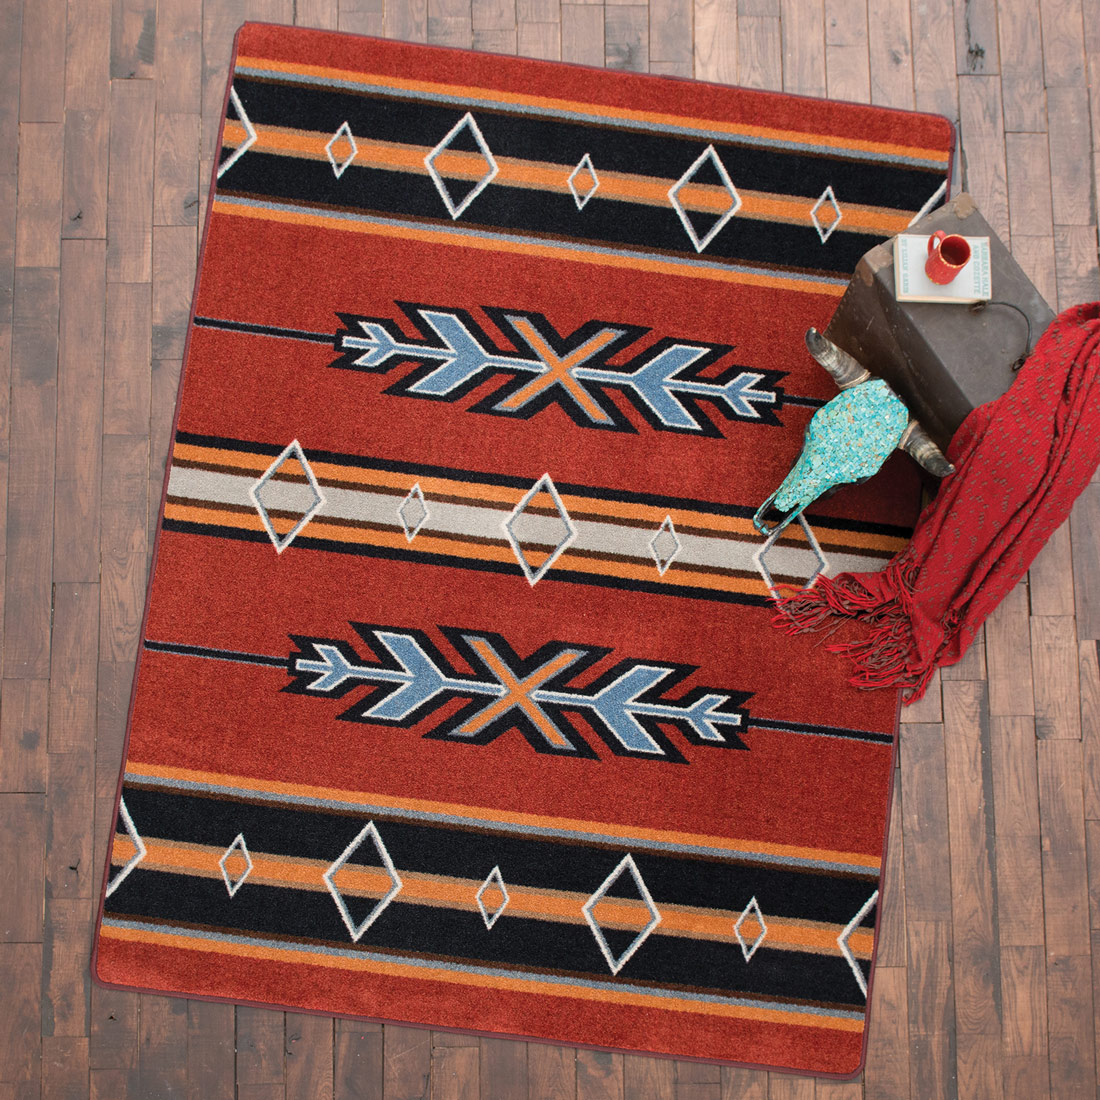 Tribal Fire Rug - 3 x 4